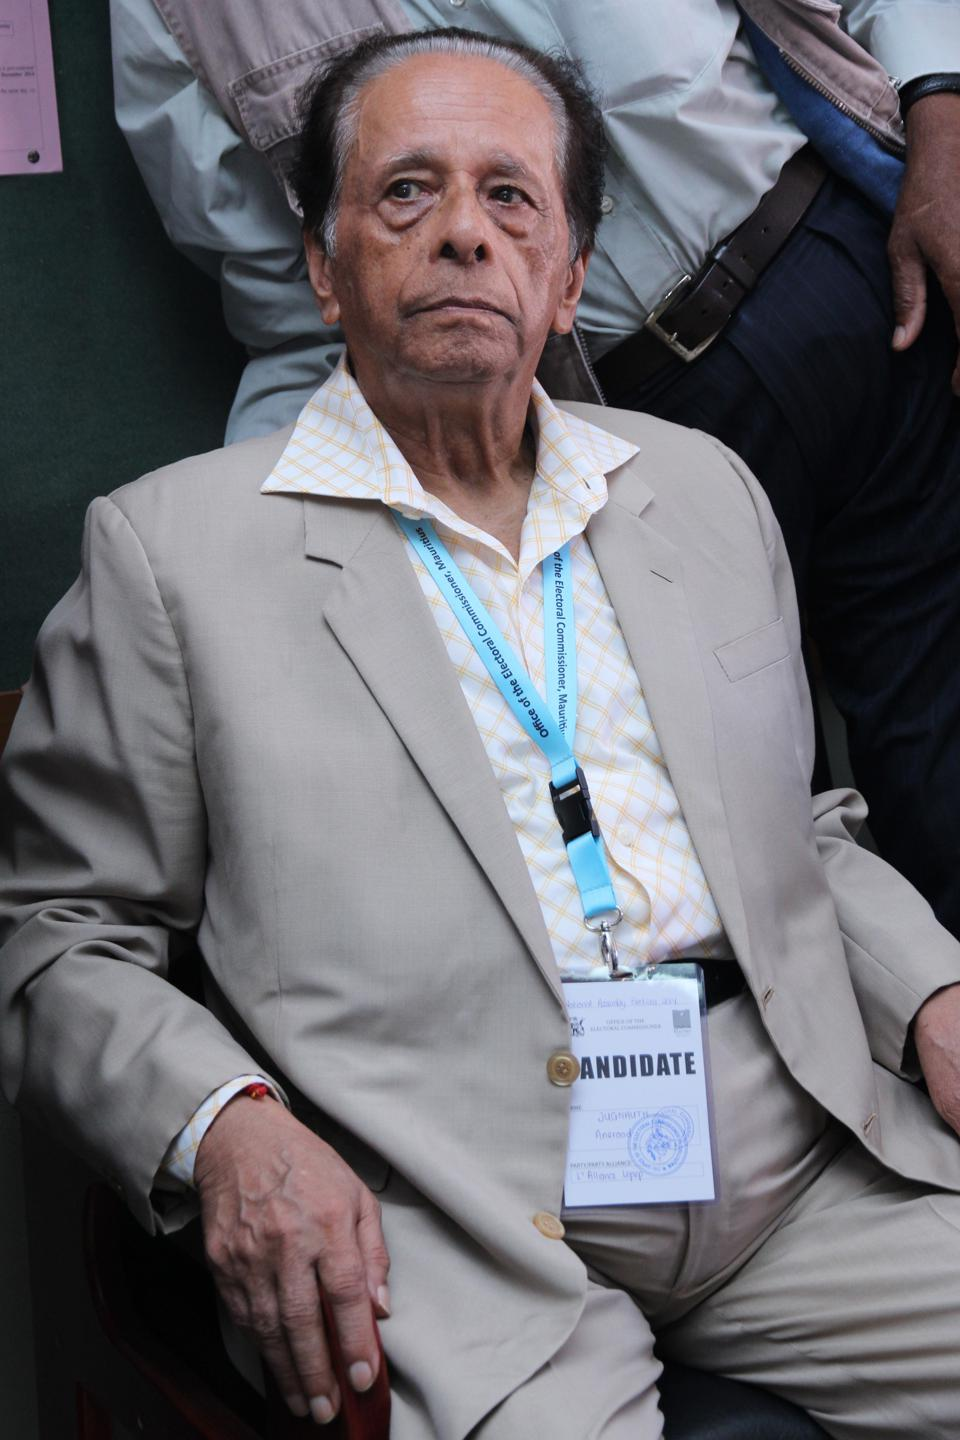 11 Dec 2014: Anerood Jugnauth elected Prime Minster at age 84 years old, and stepped down two years later